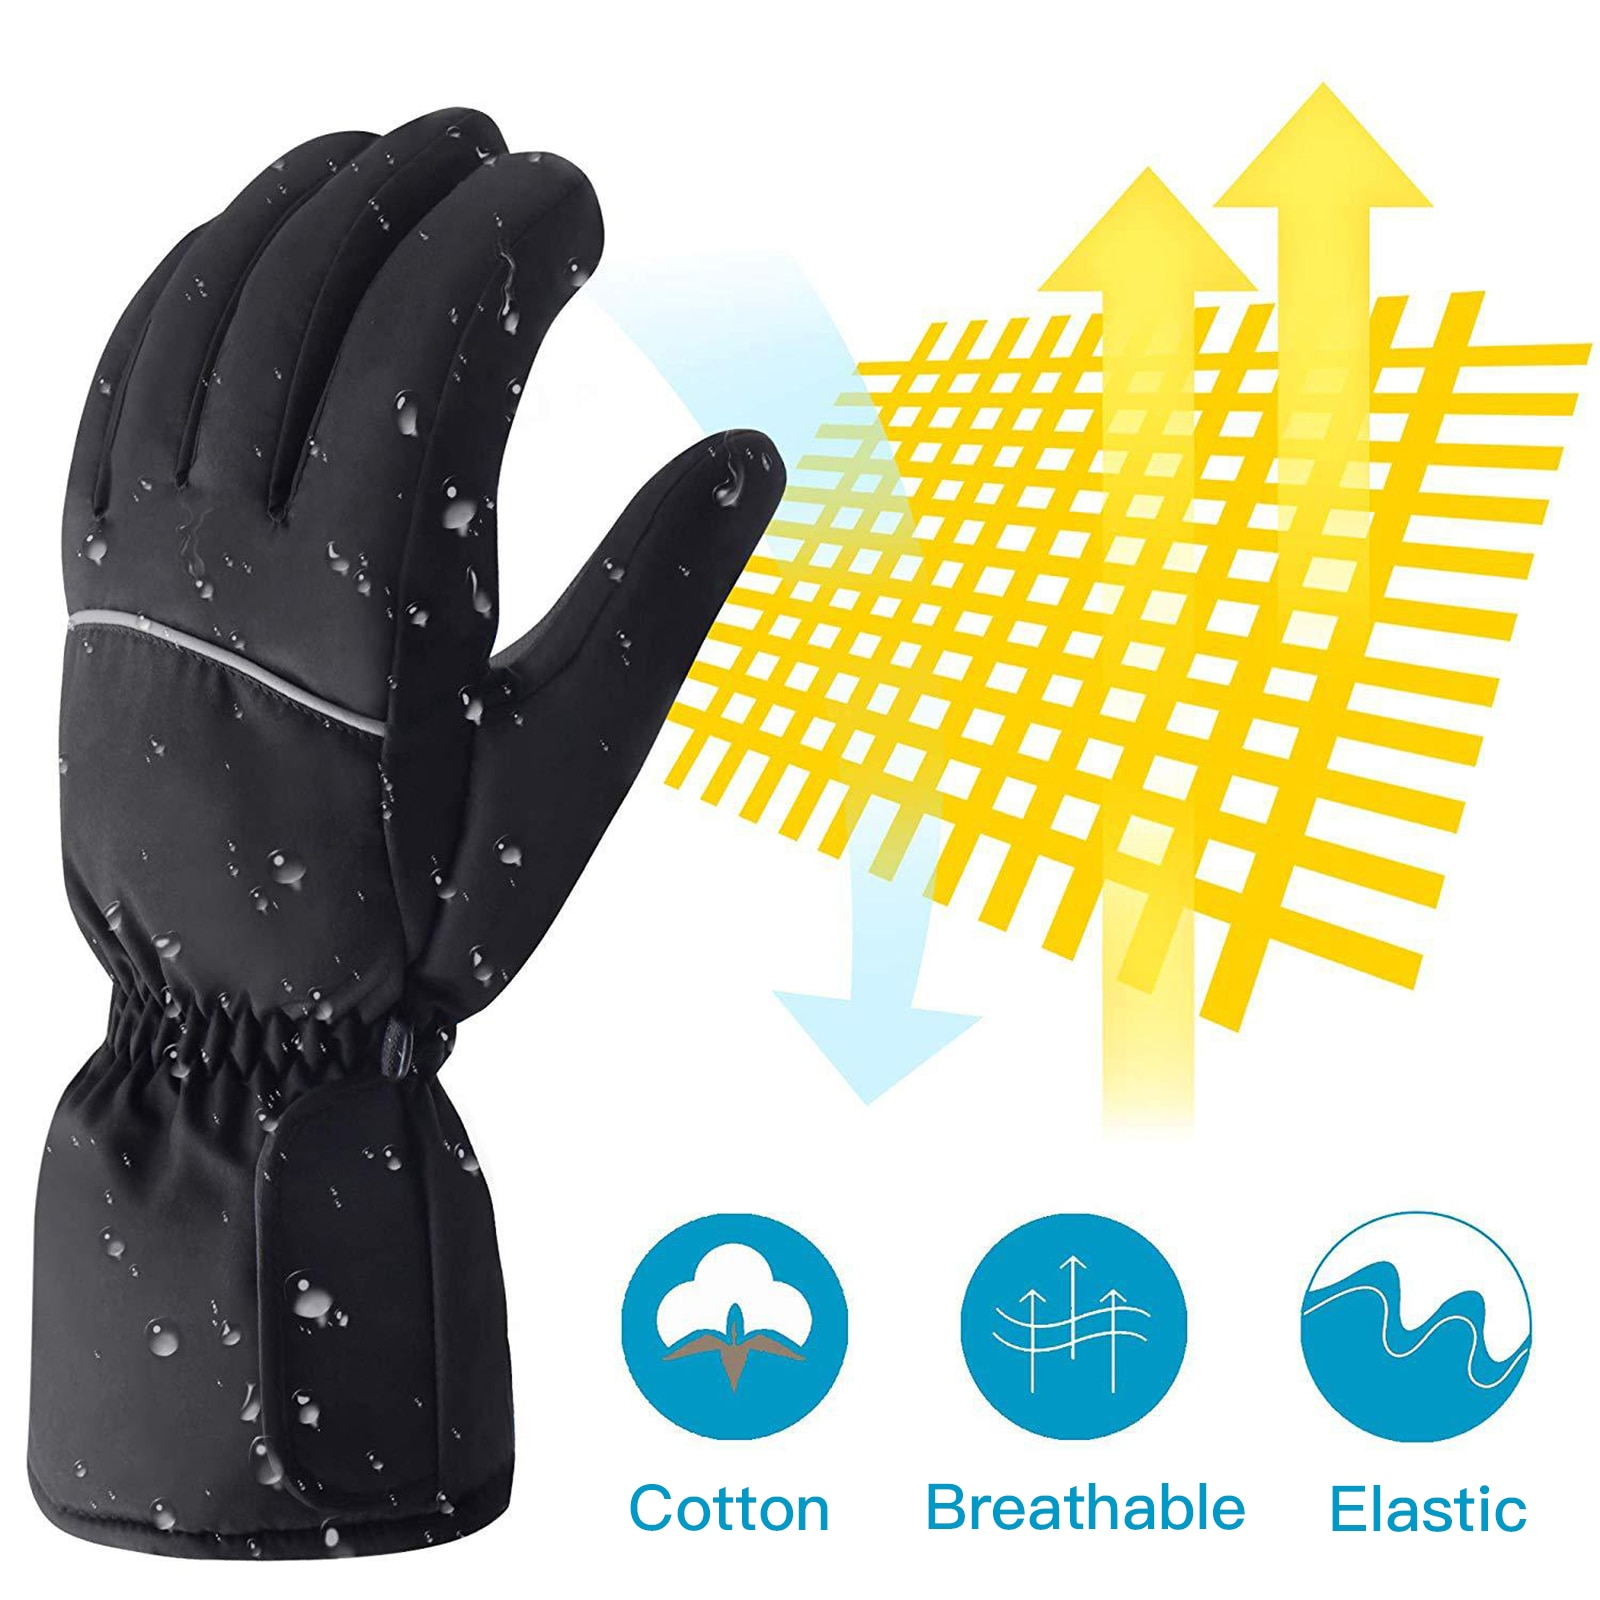 Heated Gloves Battery Powered Electric Heat Gloves For Unisex Waterproof Winter Thermal Gloves Warm Touchscreen Gloves enlarge